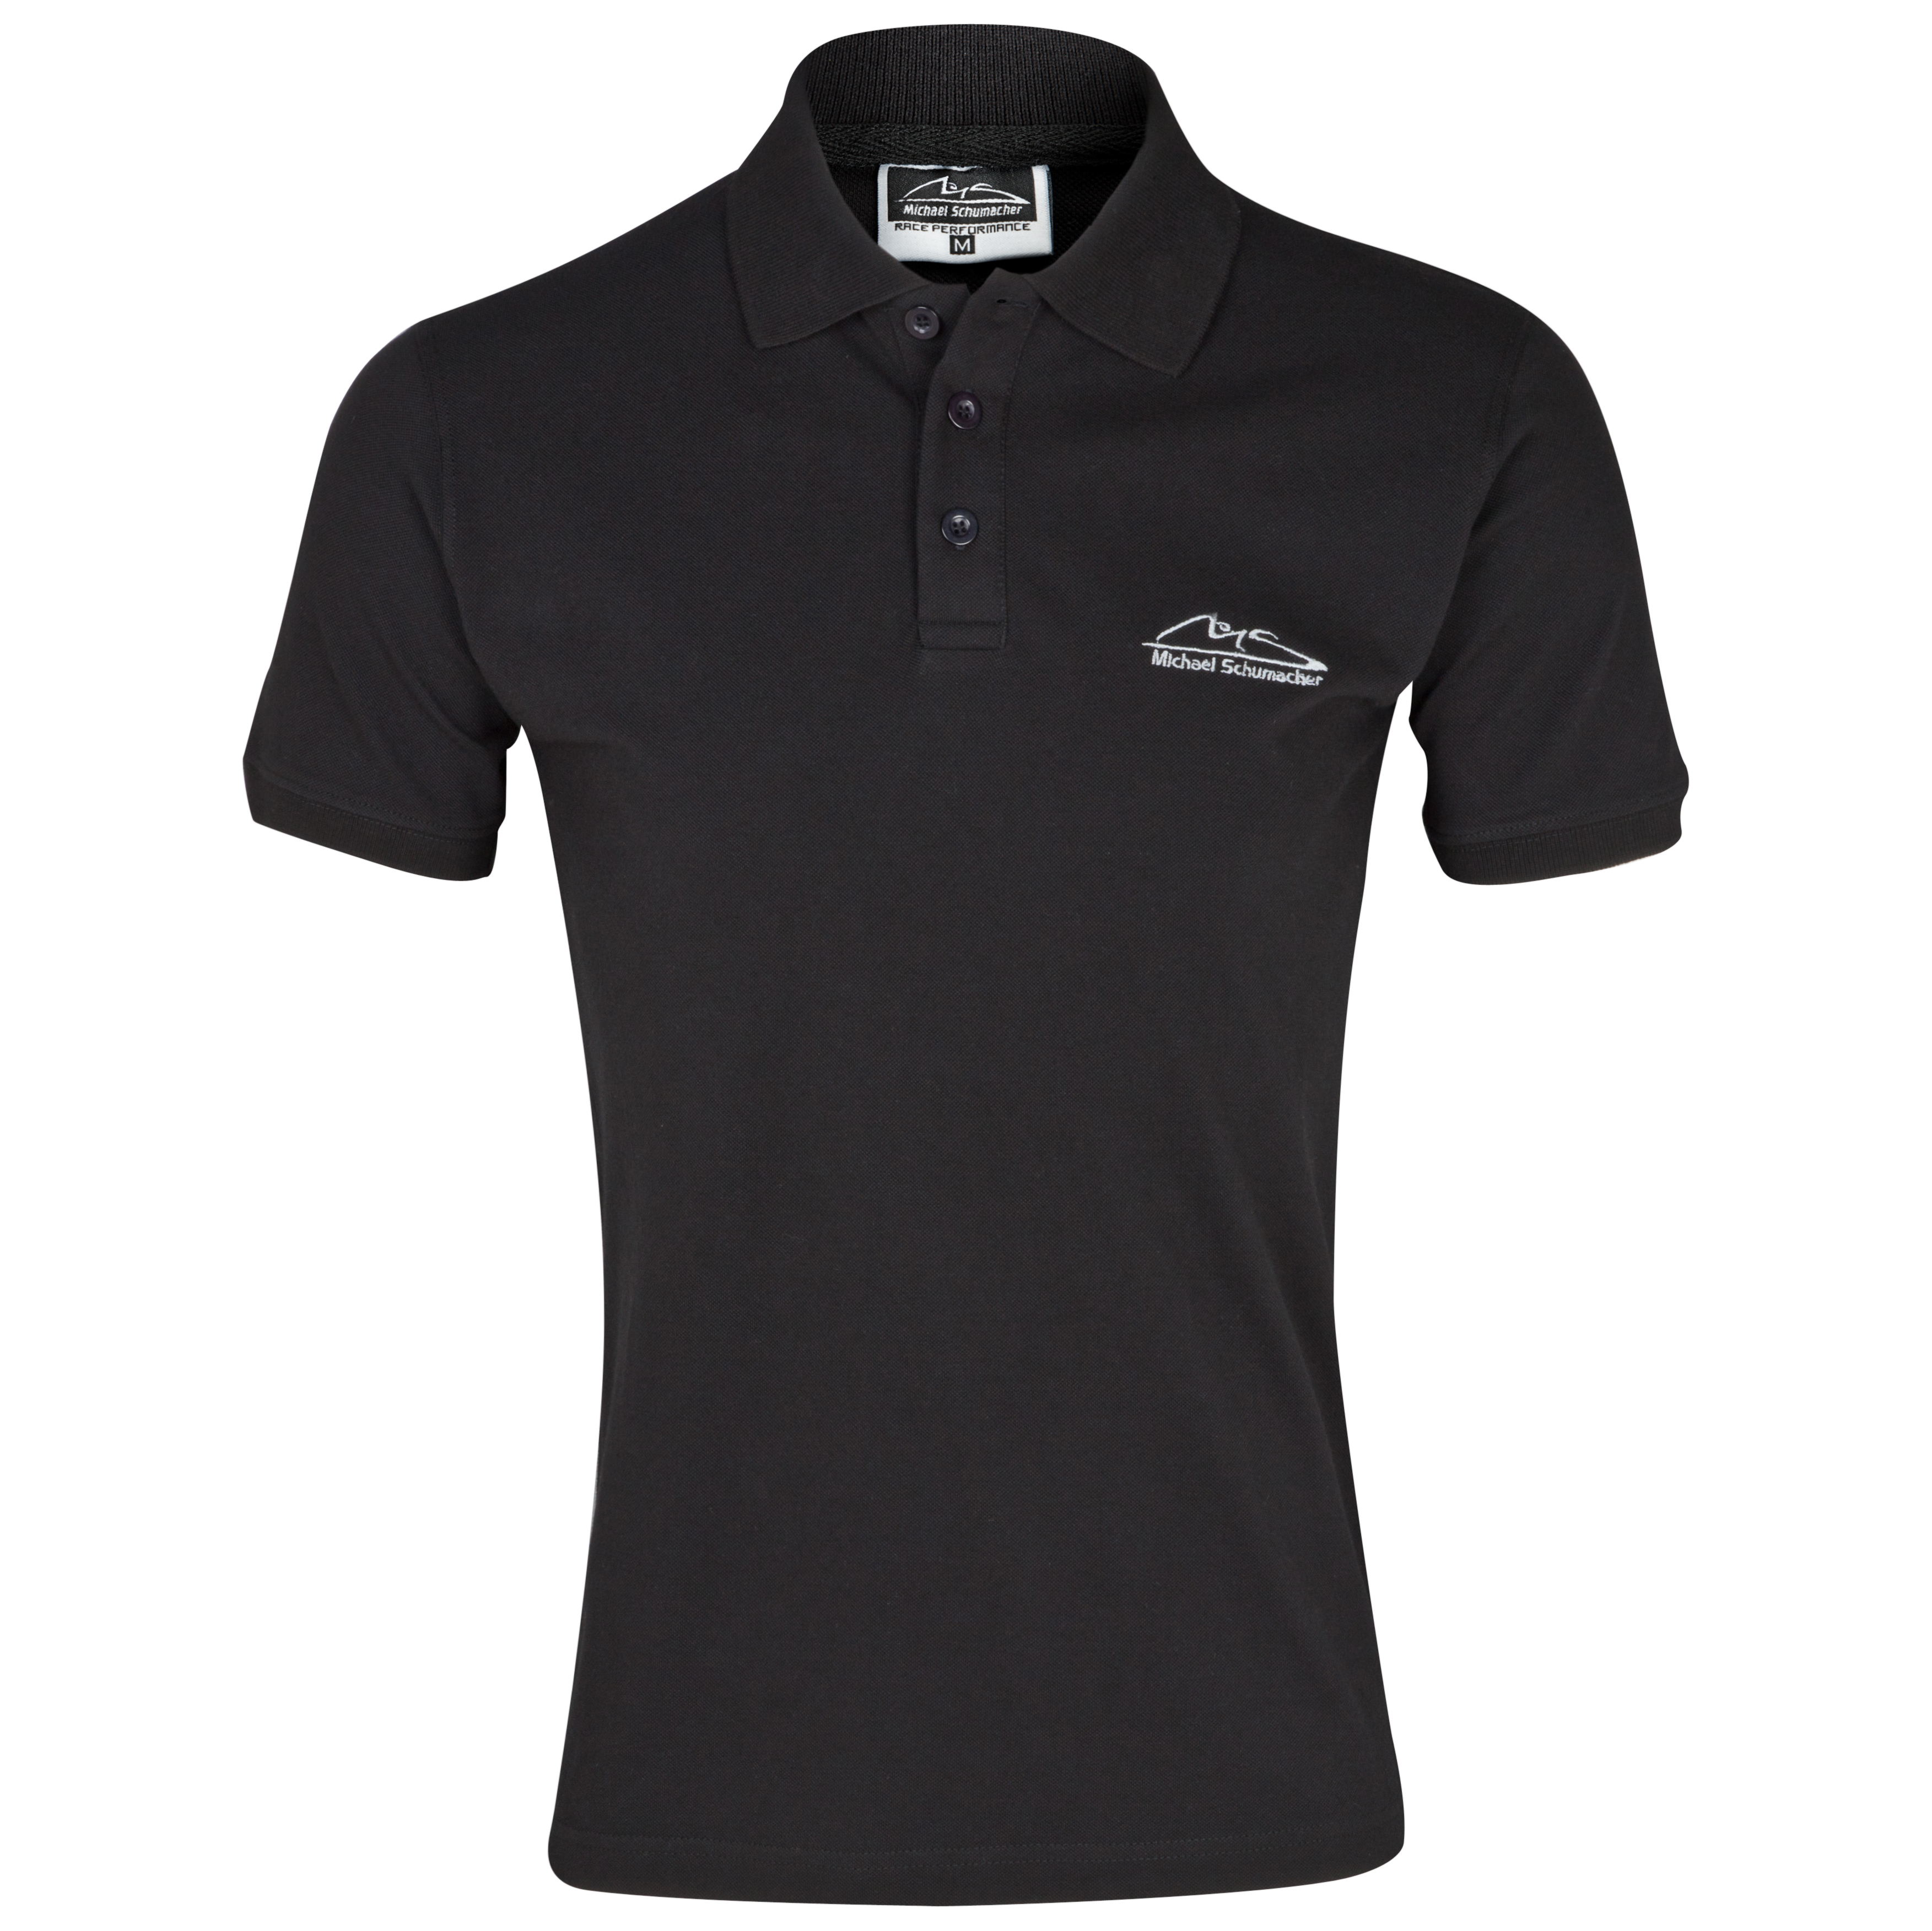 Michael Schumacher MS Logo Polo - Black